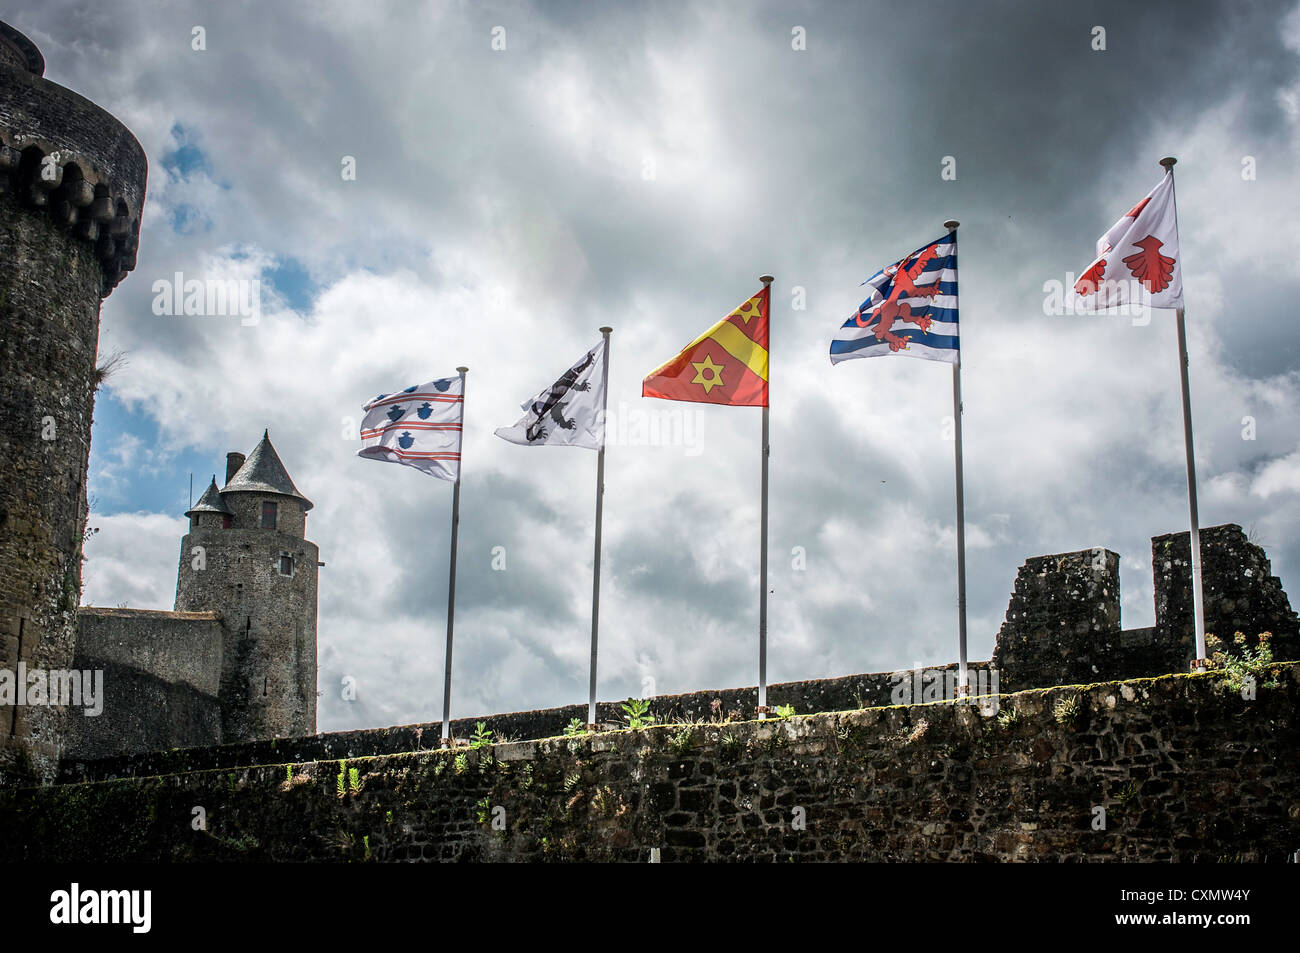 Flags fluttering in a strong breeze atop the stone walls of medieval fortified Chateau de Fougeres in Brittany, - Stock Image